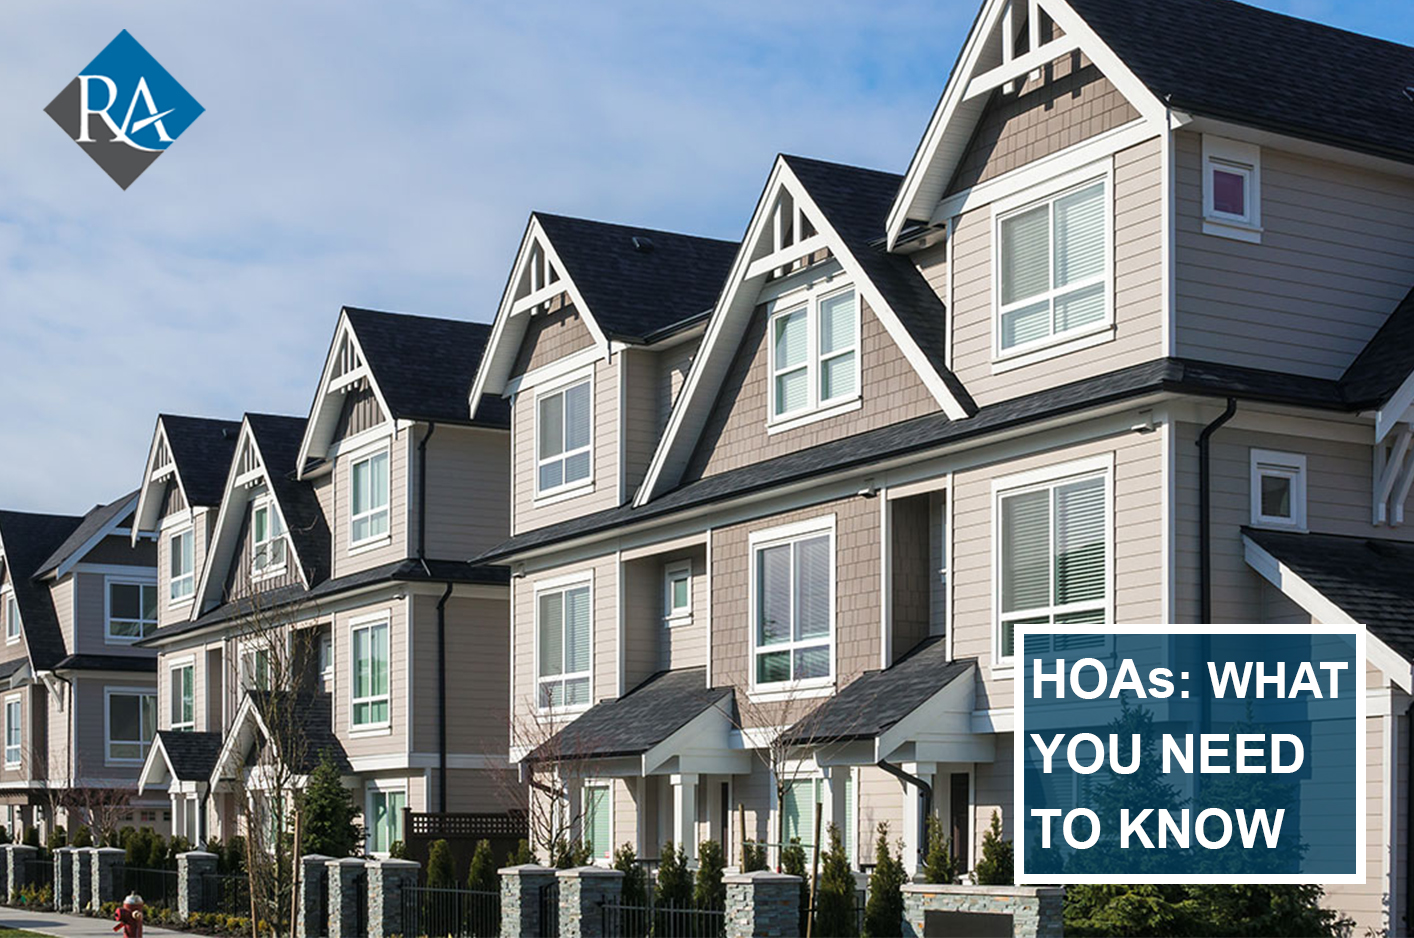 What is your HOA responsible for